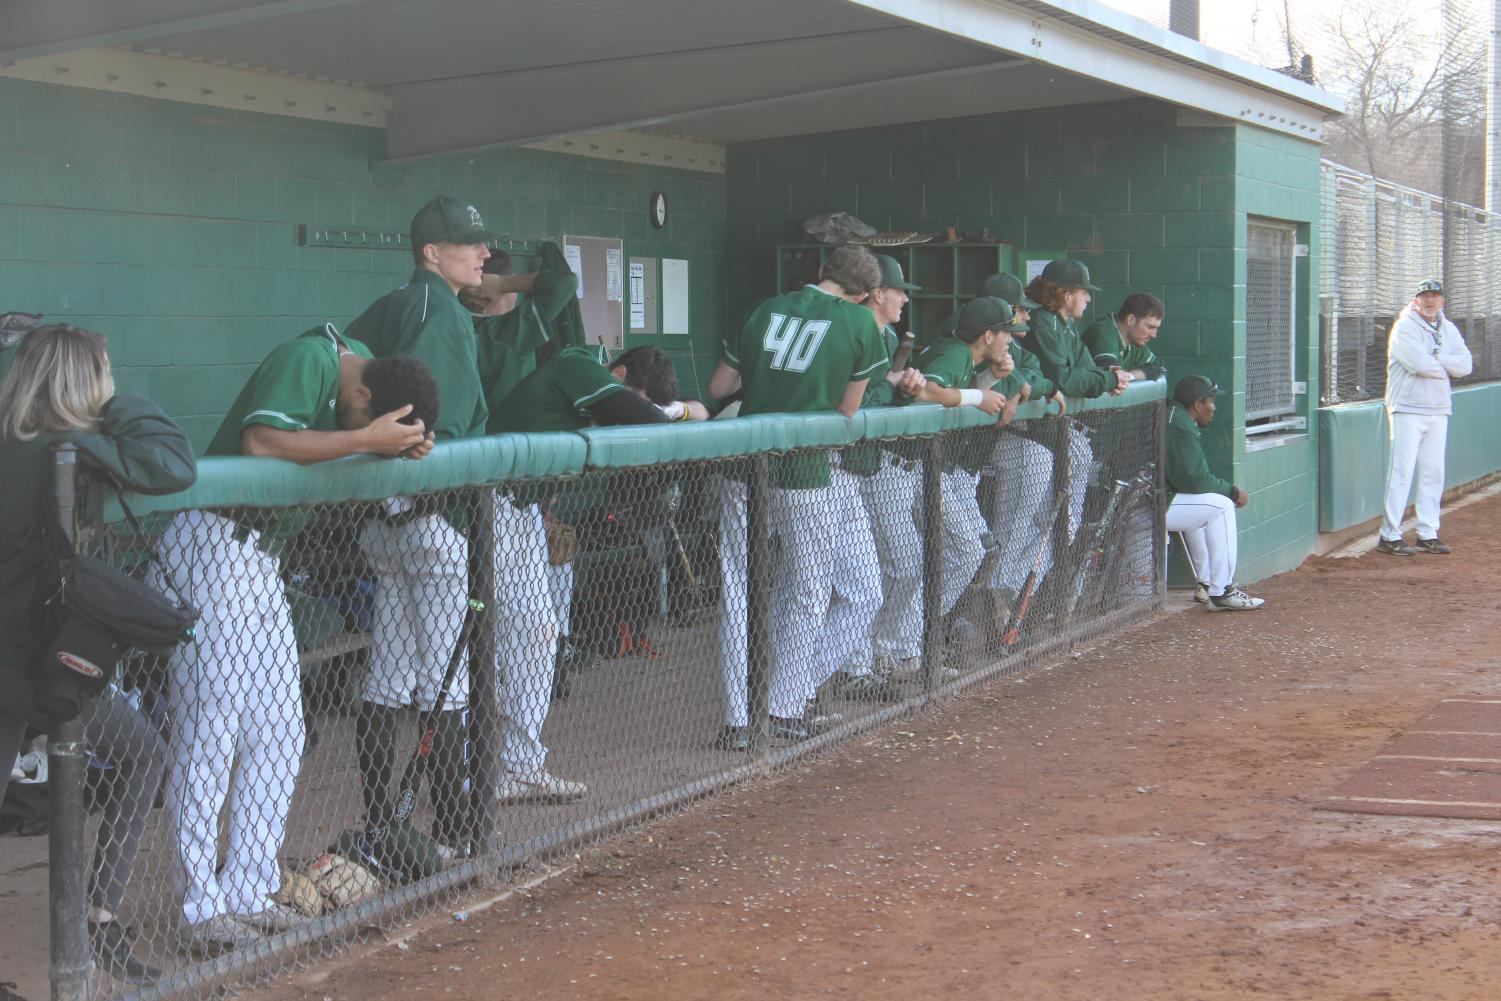 The Vikings watch the home game from their dugout in the matchup against Cabrillo on Tuesday, Feb. 20. The Vikings lost 9-7. (Alex Martin/The Inquirer).